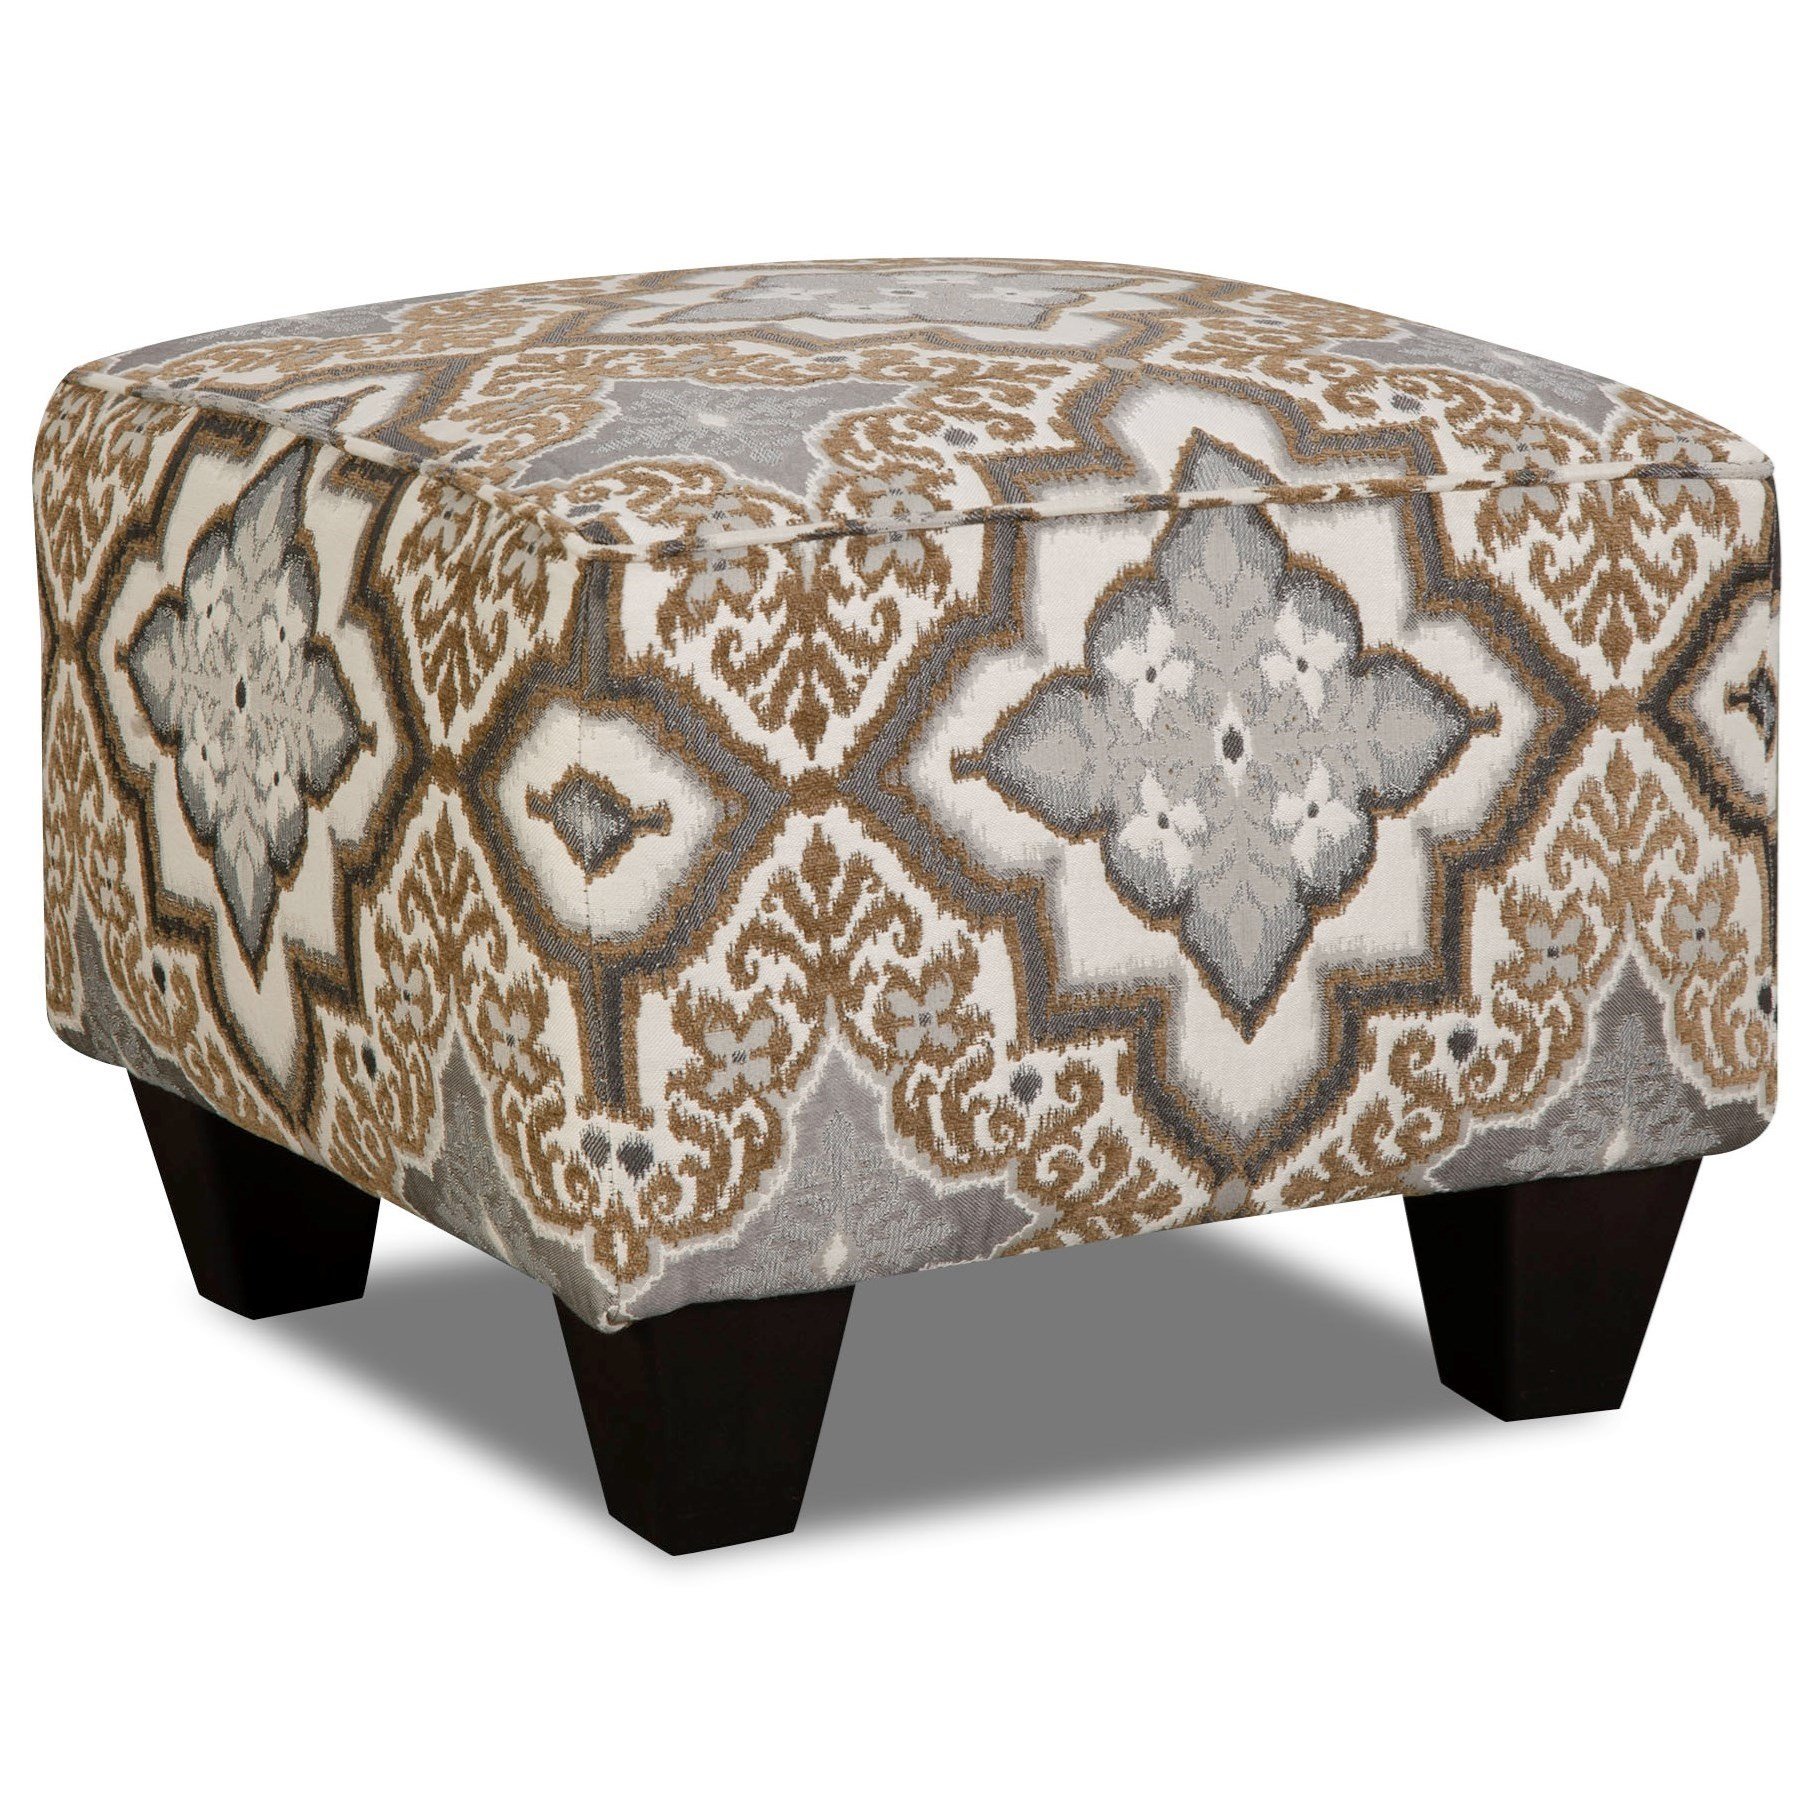 34B0 Accent Ottoman by Corinthian at Story & Lee Furniture